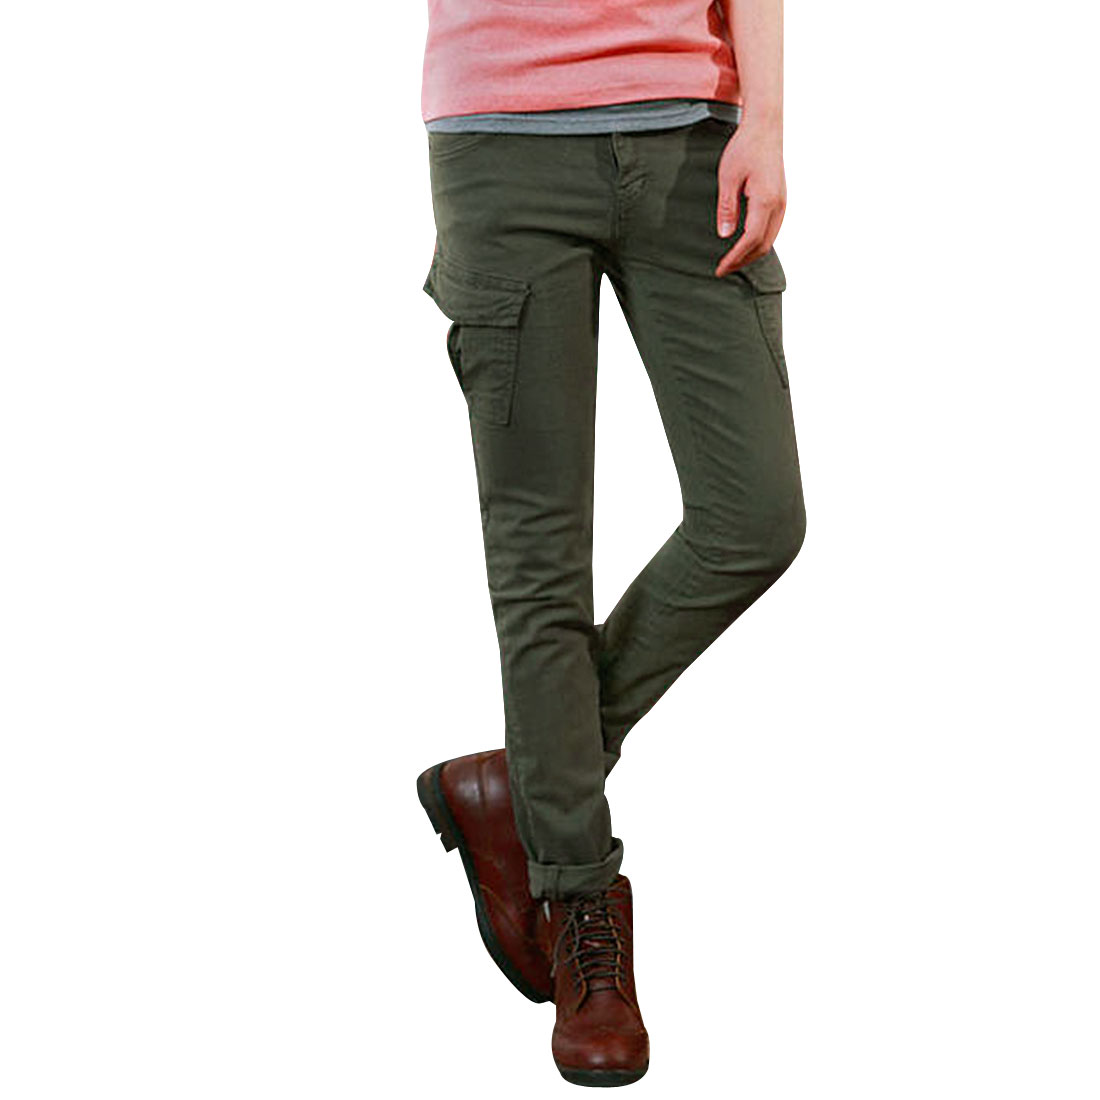 Mens Olive Green Buttoned Slim Straight Leisure Trousers W30